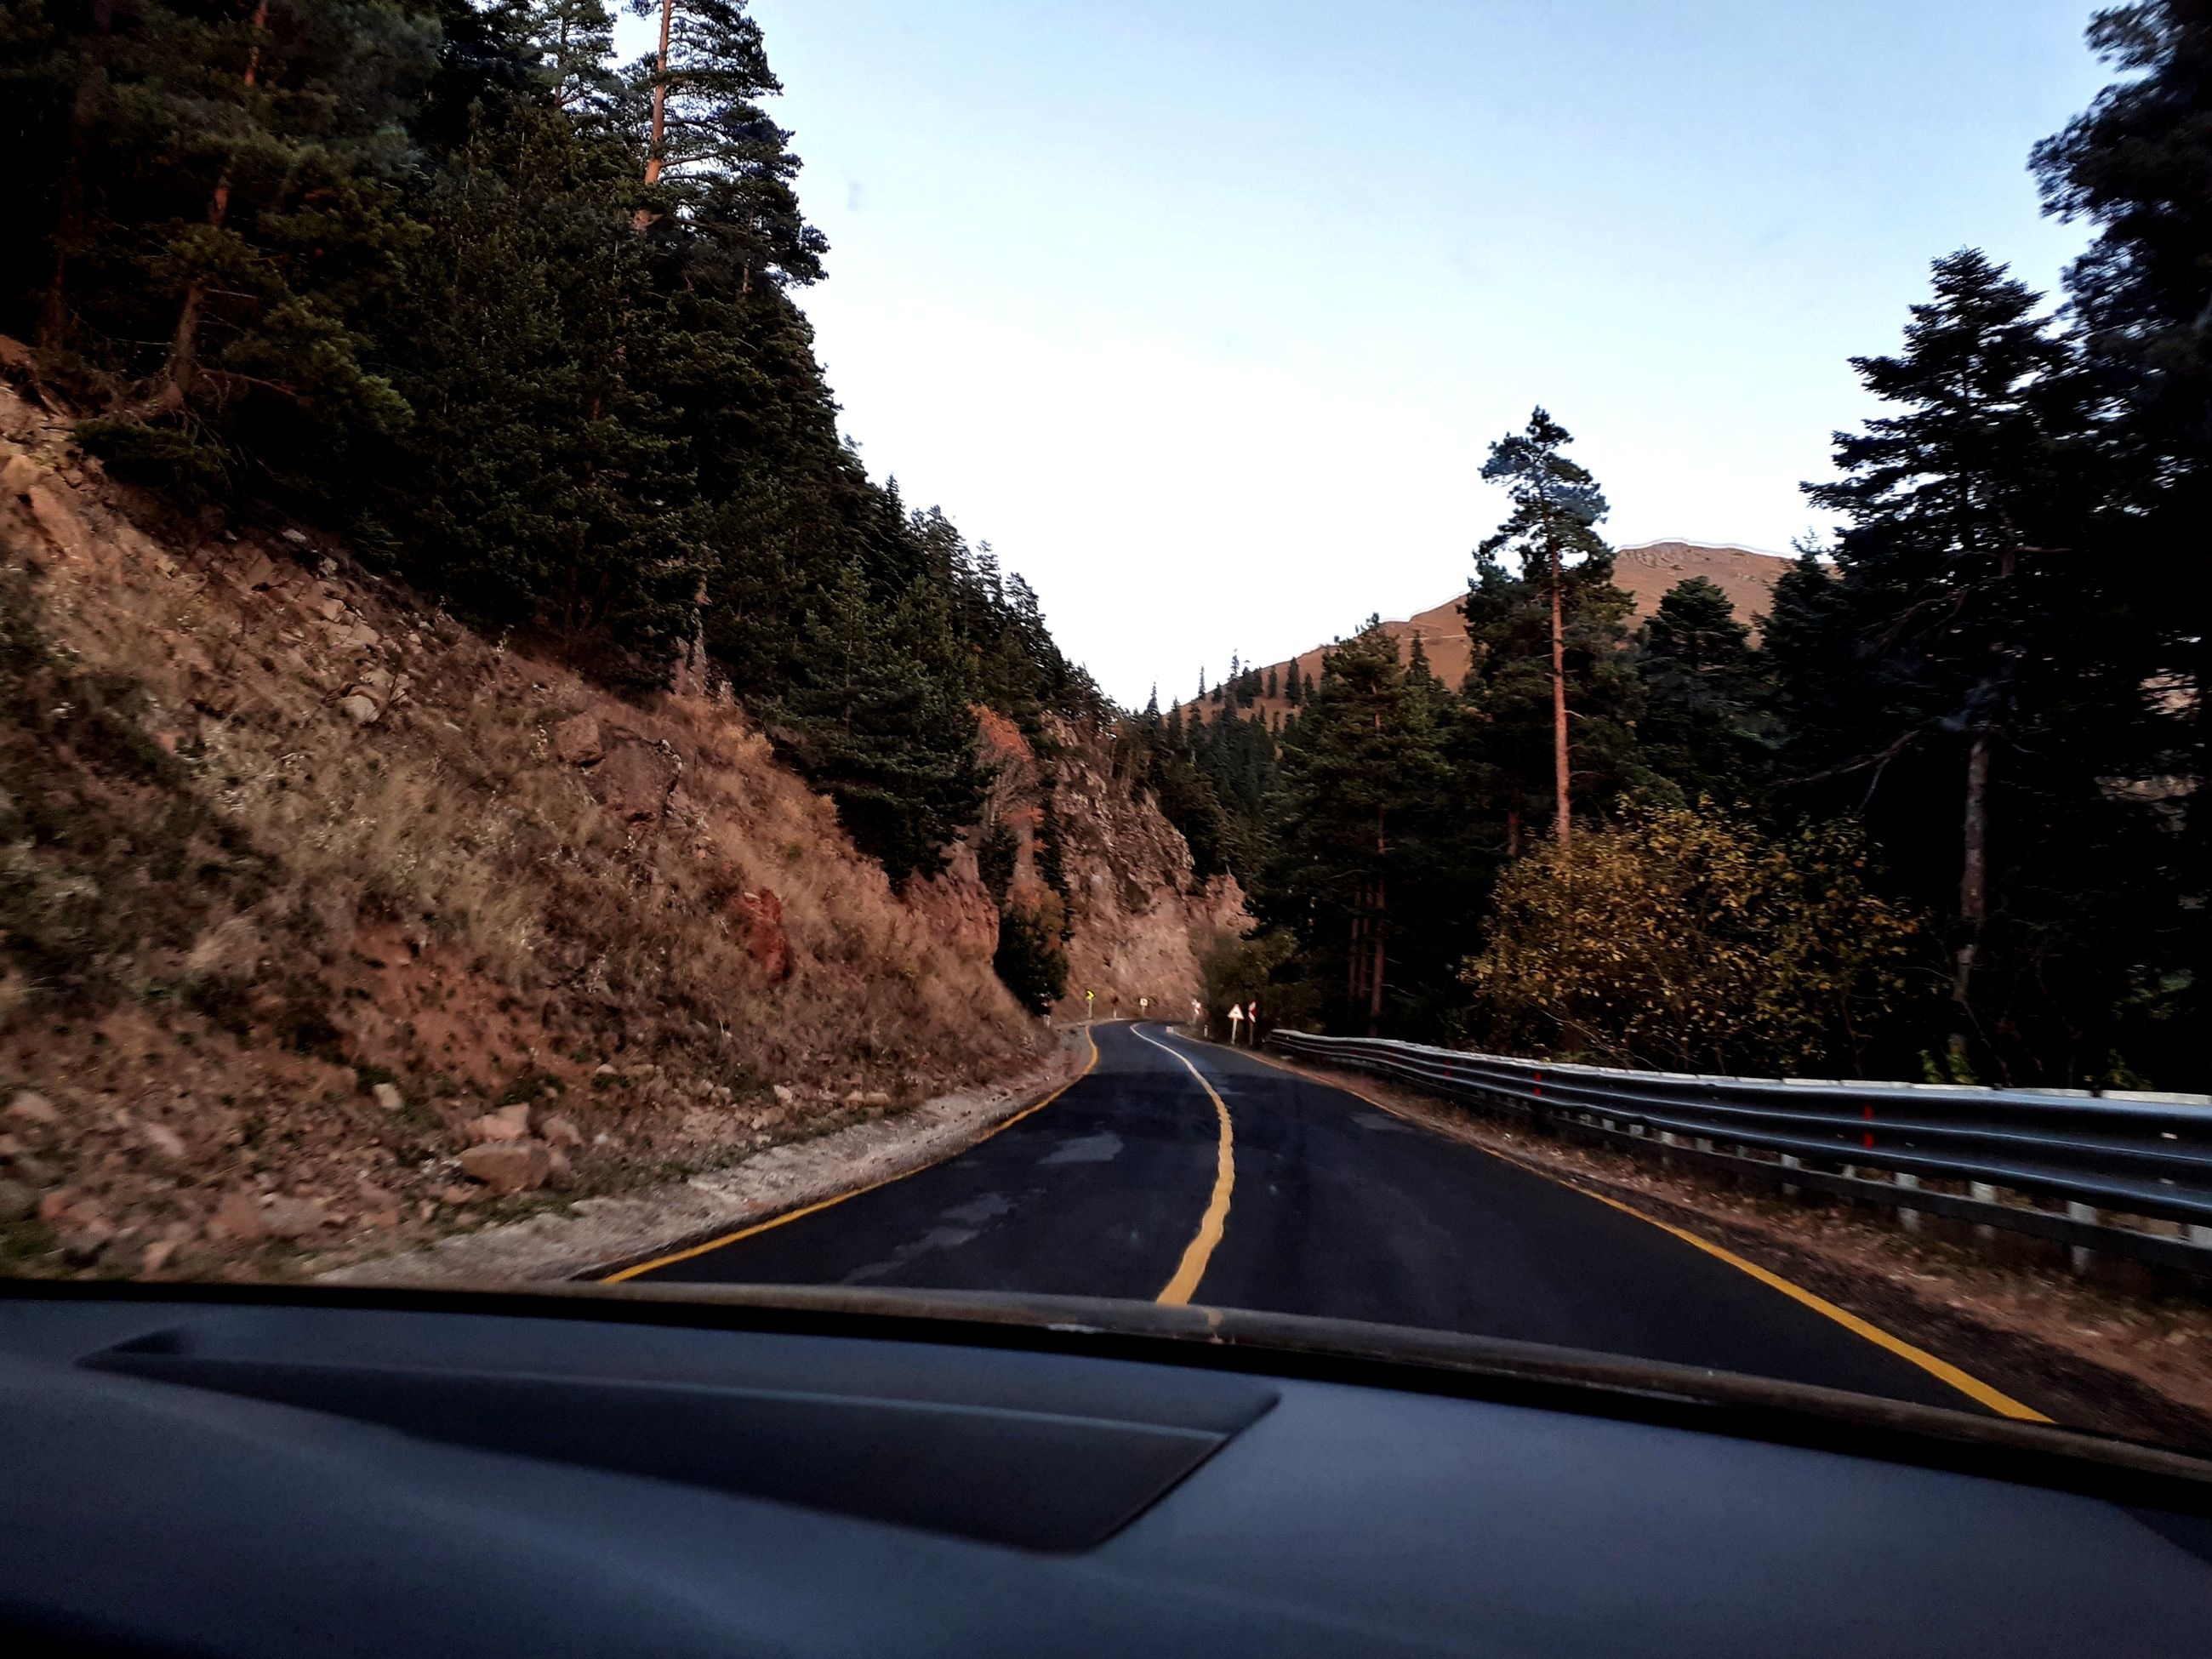 transportation, car, mode of transportation, tree, motor vehicle, transparent, plant, land vehicle, road, sky, vehicle interior, glass - material, windshield, nature, car interior, no people, travel, on the move, mountain, day, outdoors, car point of view